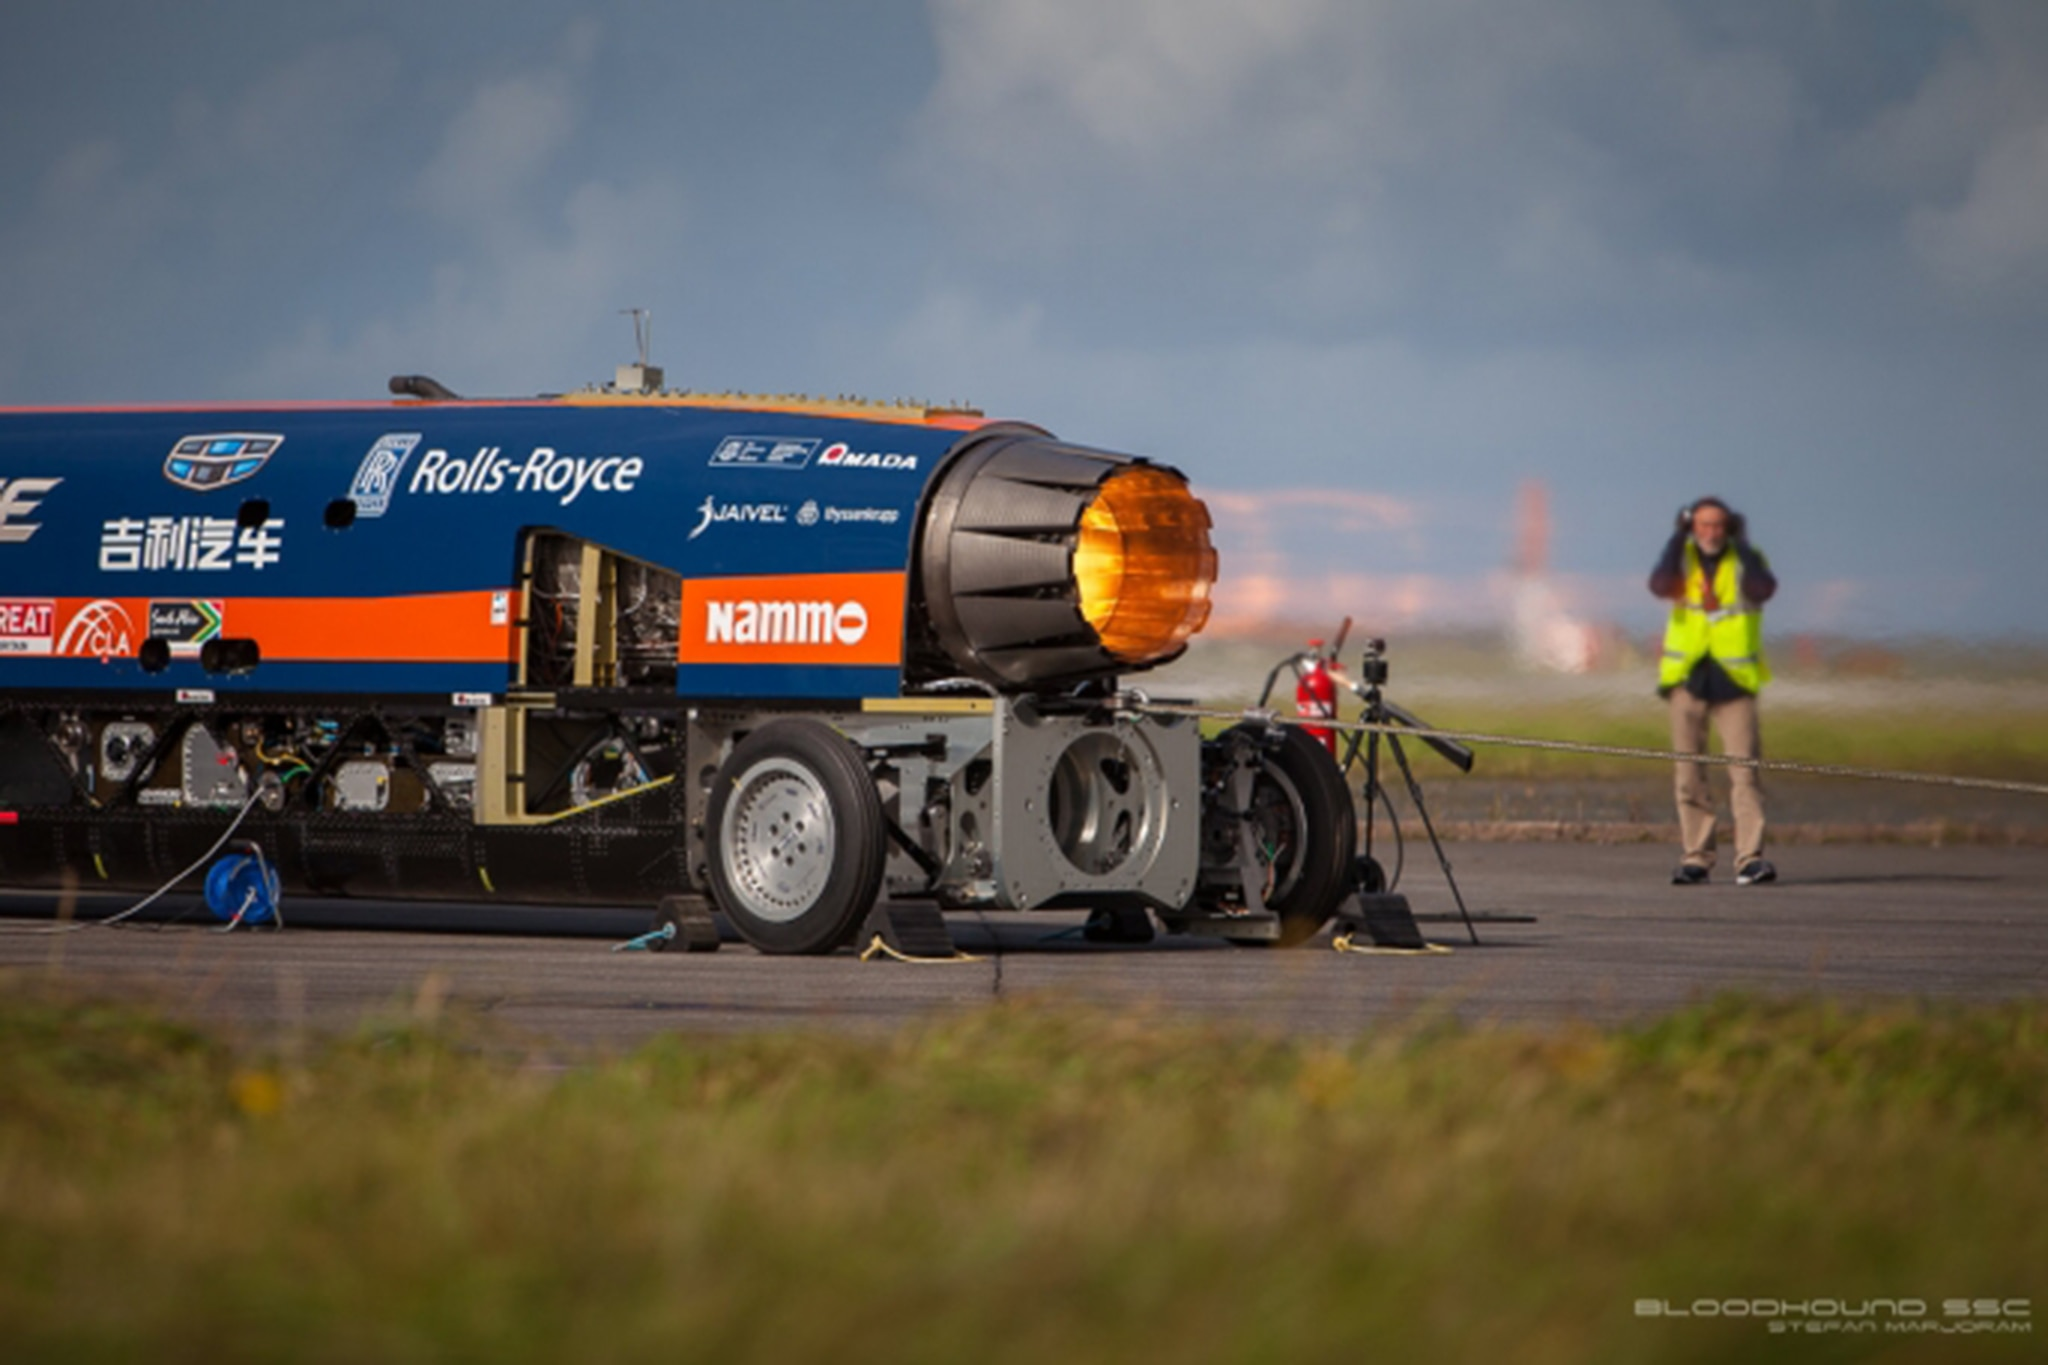 Bloodhound SSC Fired